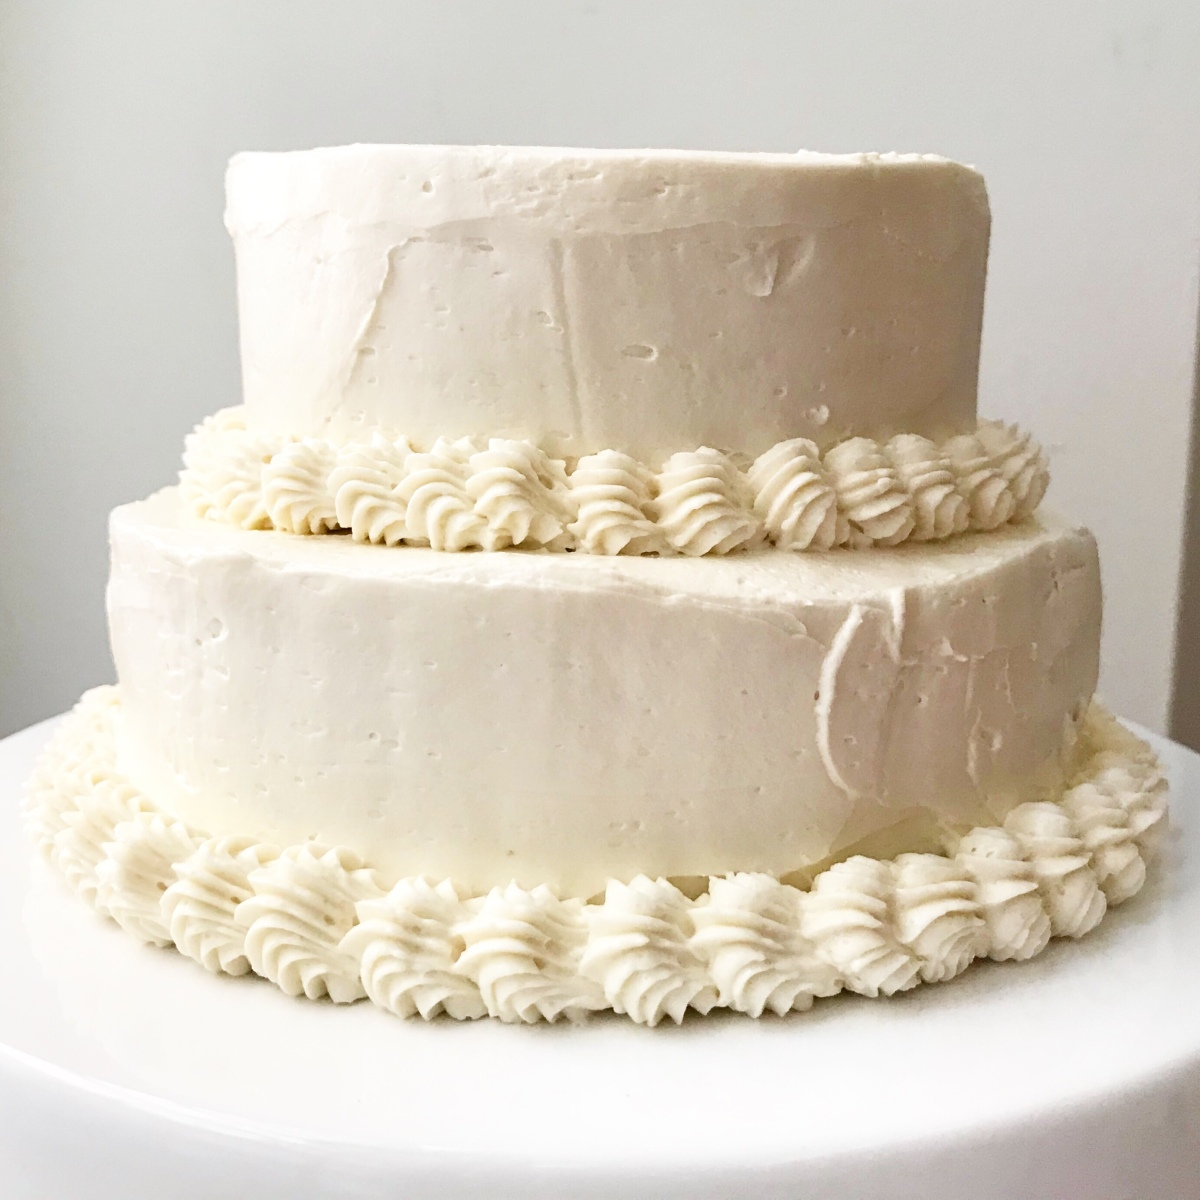 Let's Make a Wedding Cake, Vol. 1